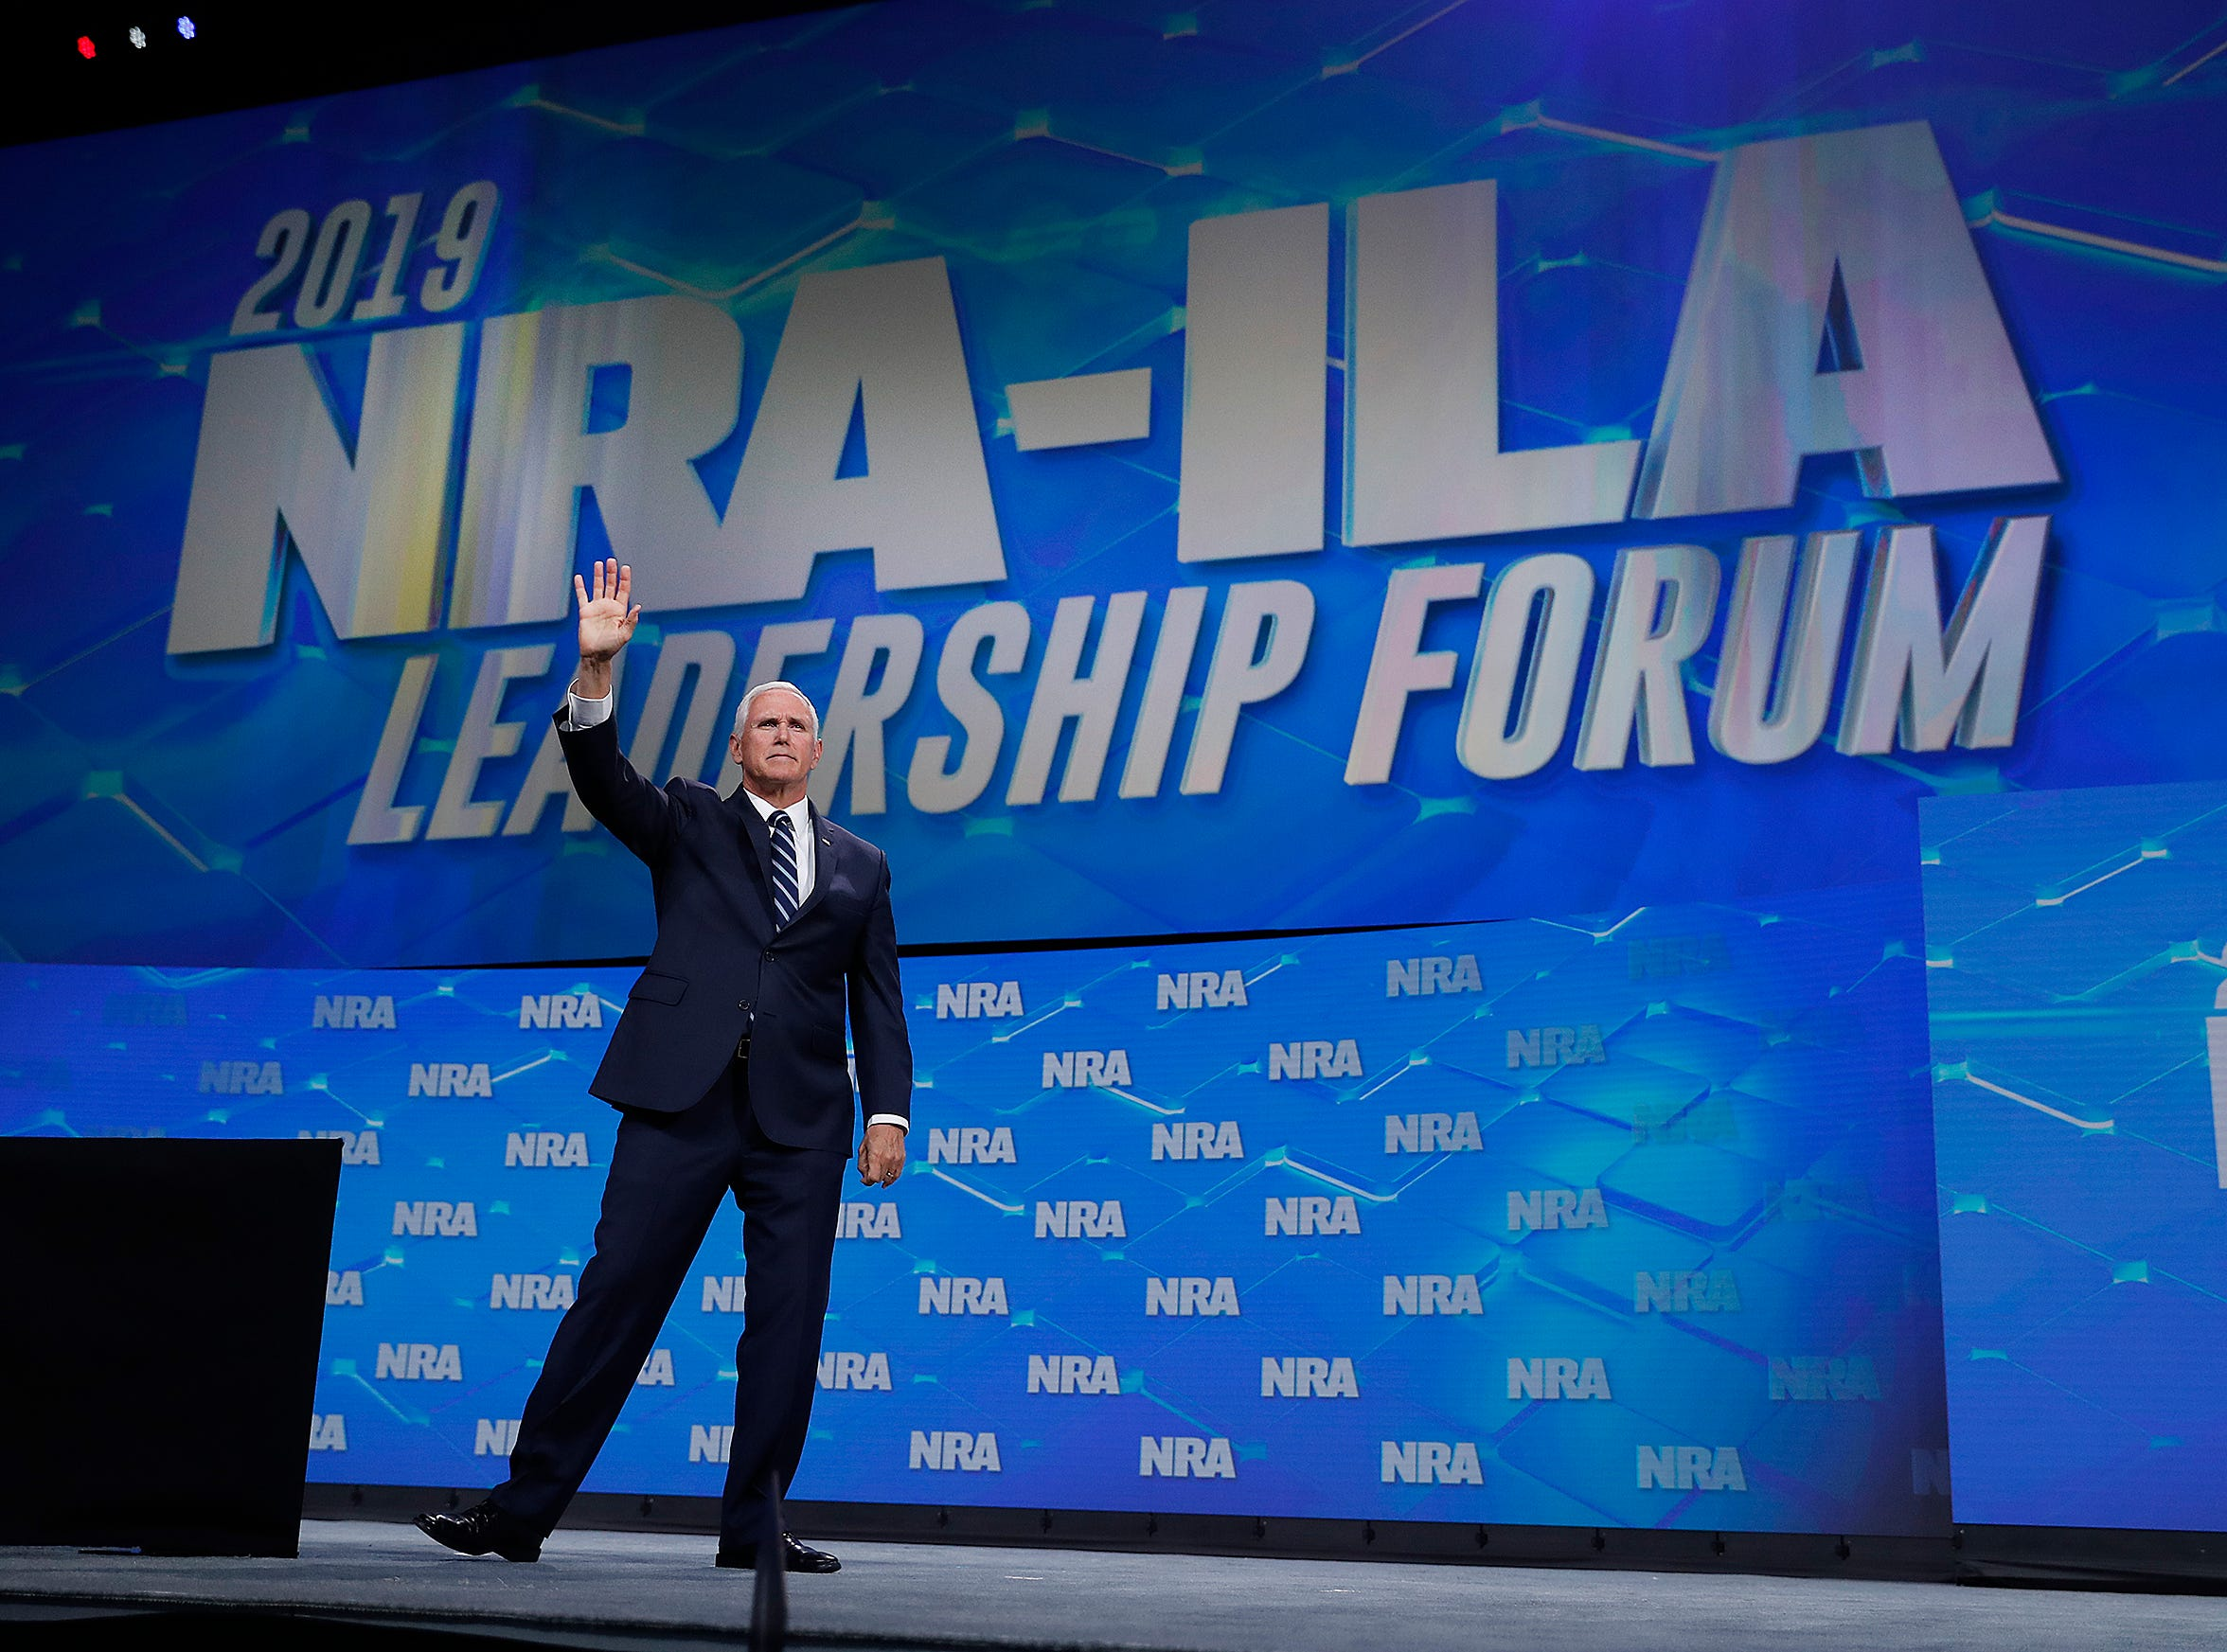 Vice President Mike Pence waves to his supporters at the NRA-ILA Leadership Forum at Lucas Oil Stadium on Friday, April 26, 2019.